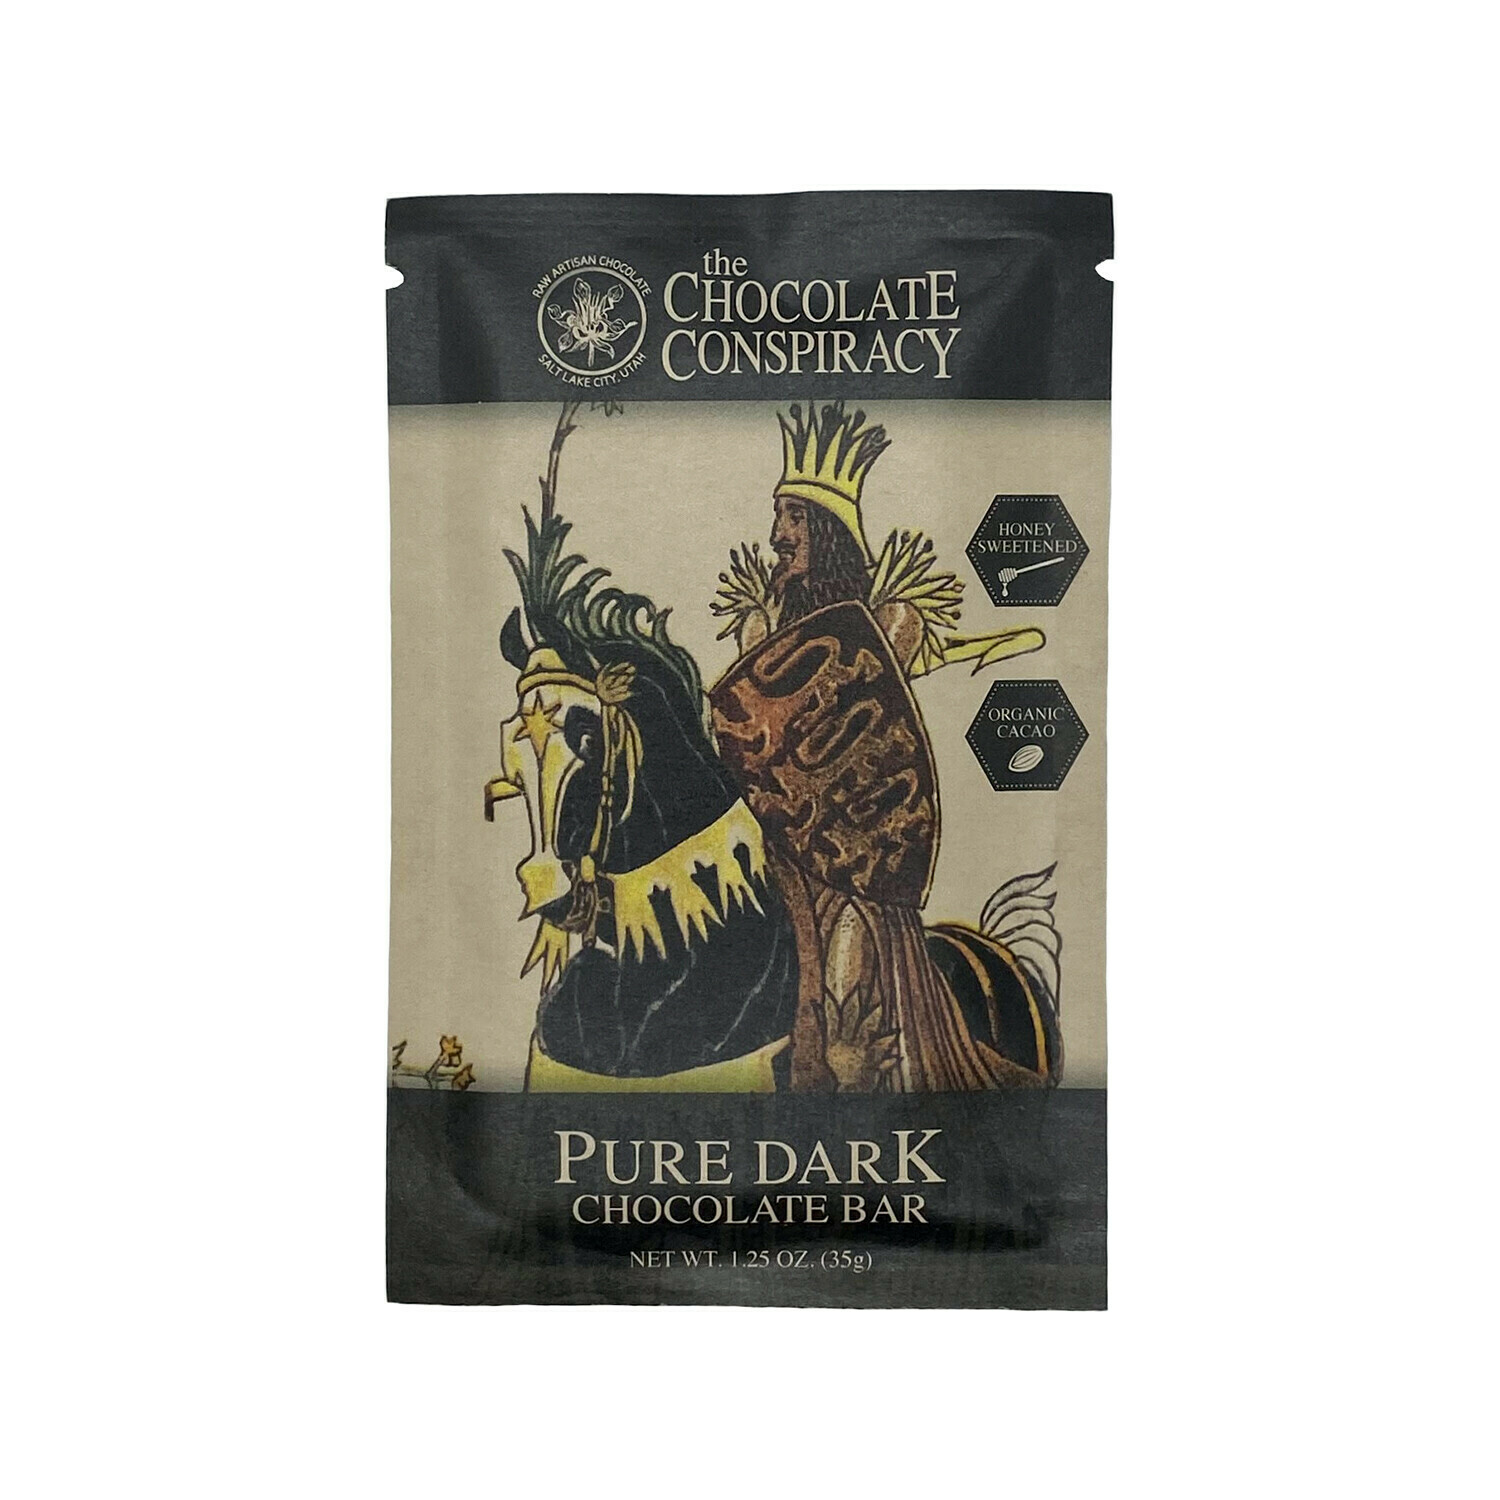 Chocolate Conspiracy Pure Dark Chocolate Bar Utah 35g